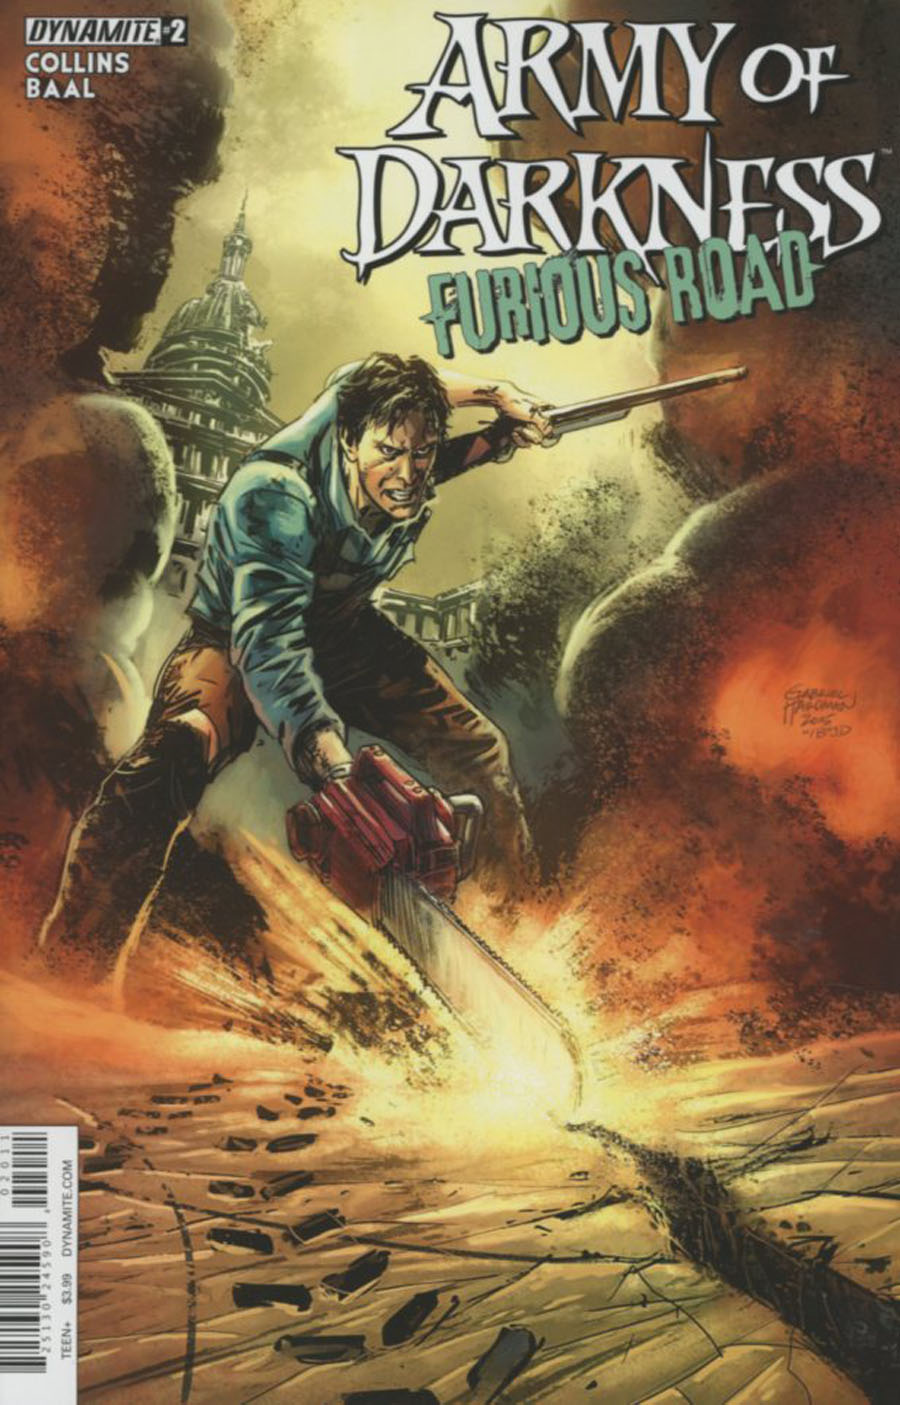 Army Of Darkness Furious Road #2 Cover A Regular Gabriel Hardman Cover